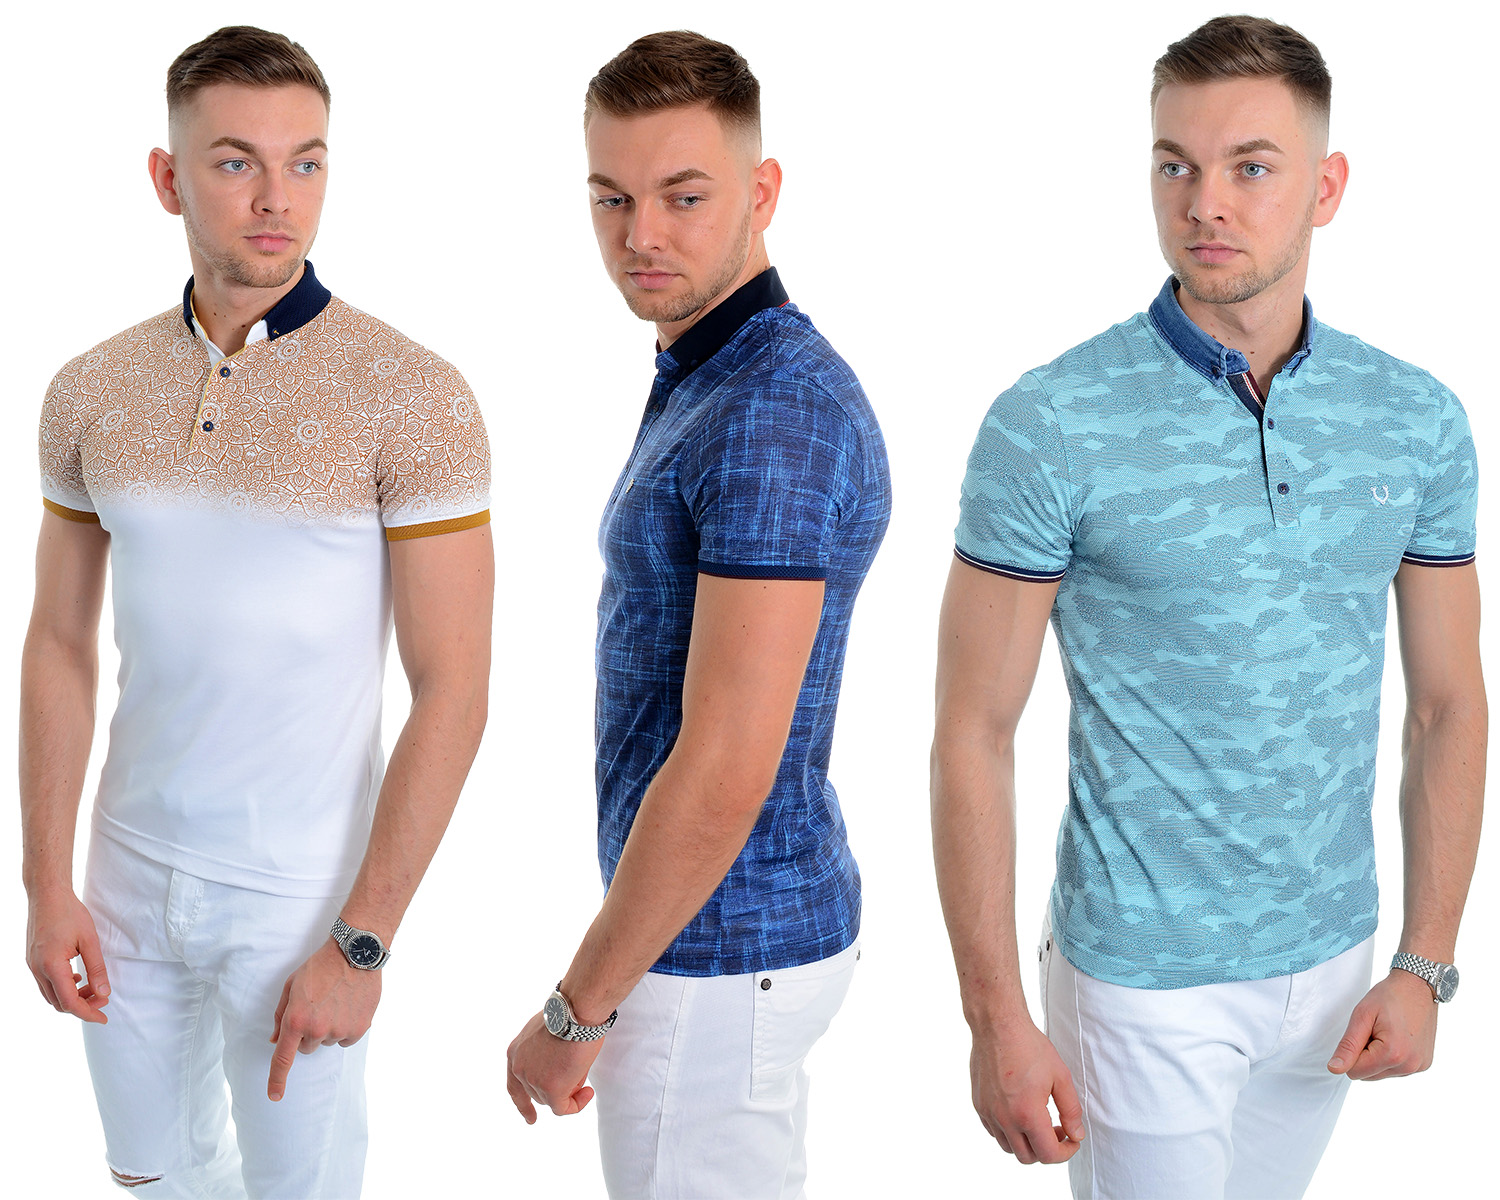 polo t shirts for mens online - drfashion.co.uk